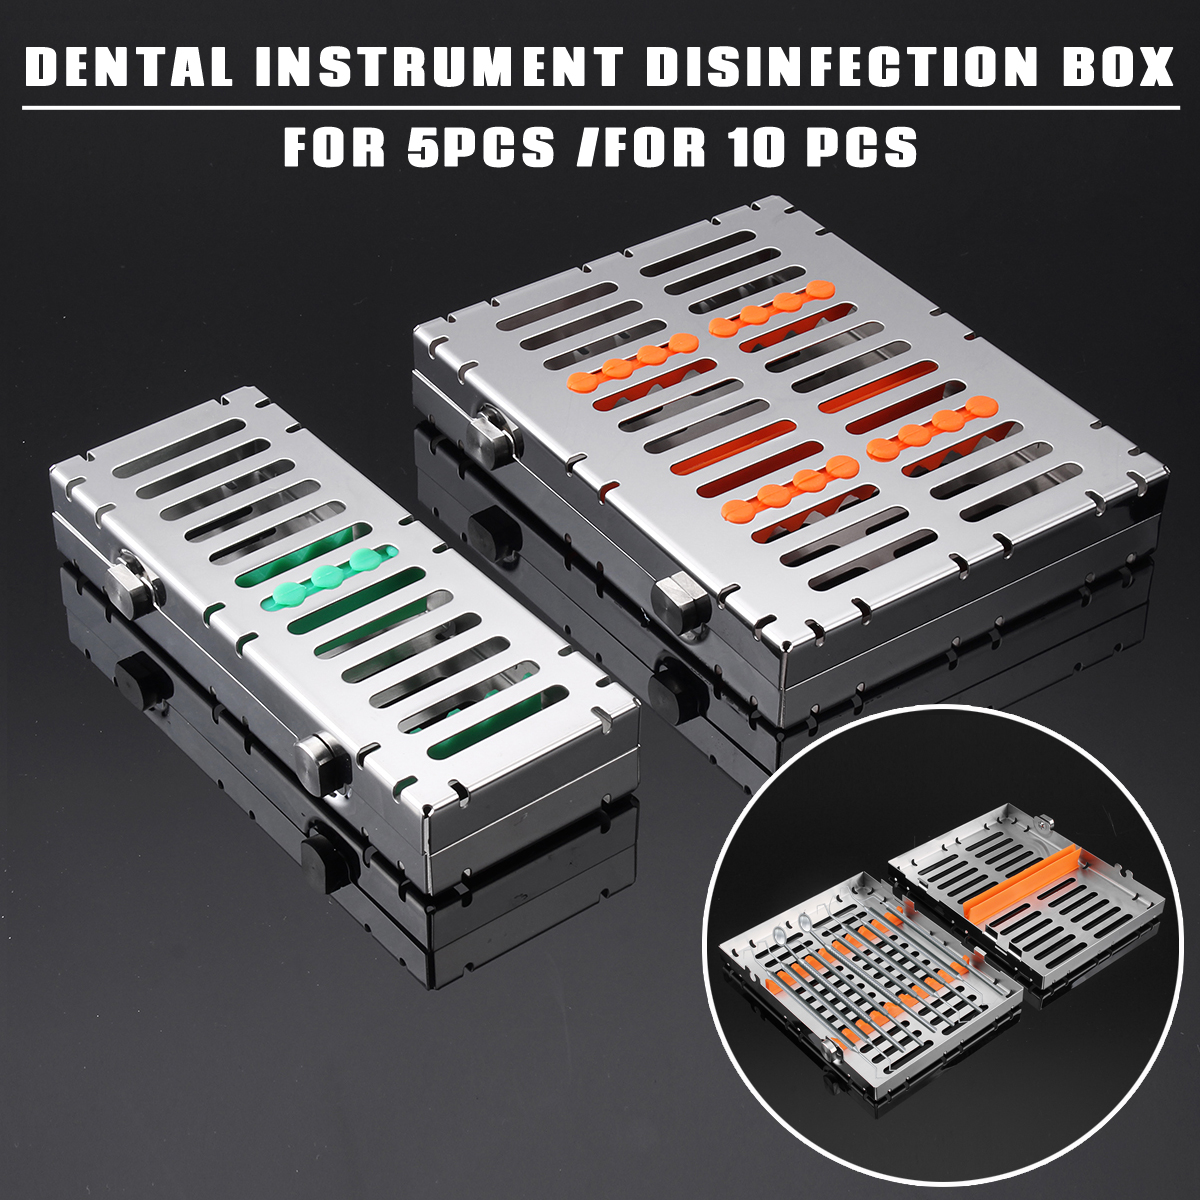 Stainless Steel Dental Sterilization Cassette Rack Tray Stand Autoclavebale Disinfection Holder For 5/10pc Surgical Instrument dental sterilization cassette disinfection rack tray box for 20 instrument dentistry material dentist tool free shipping